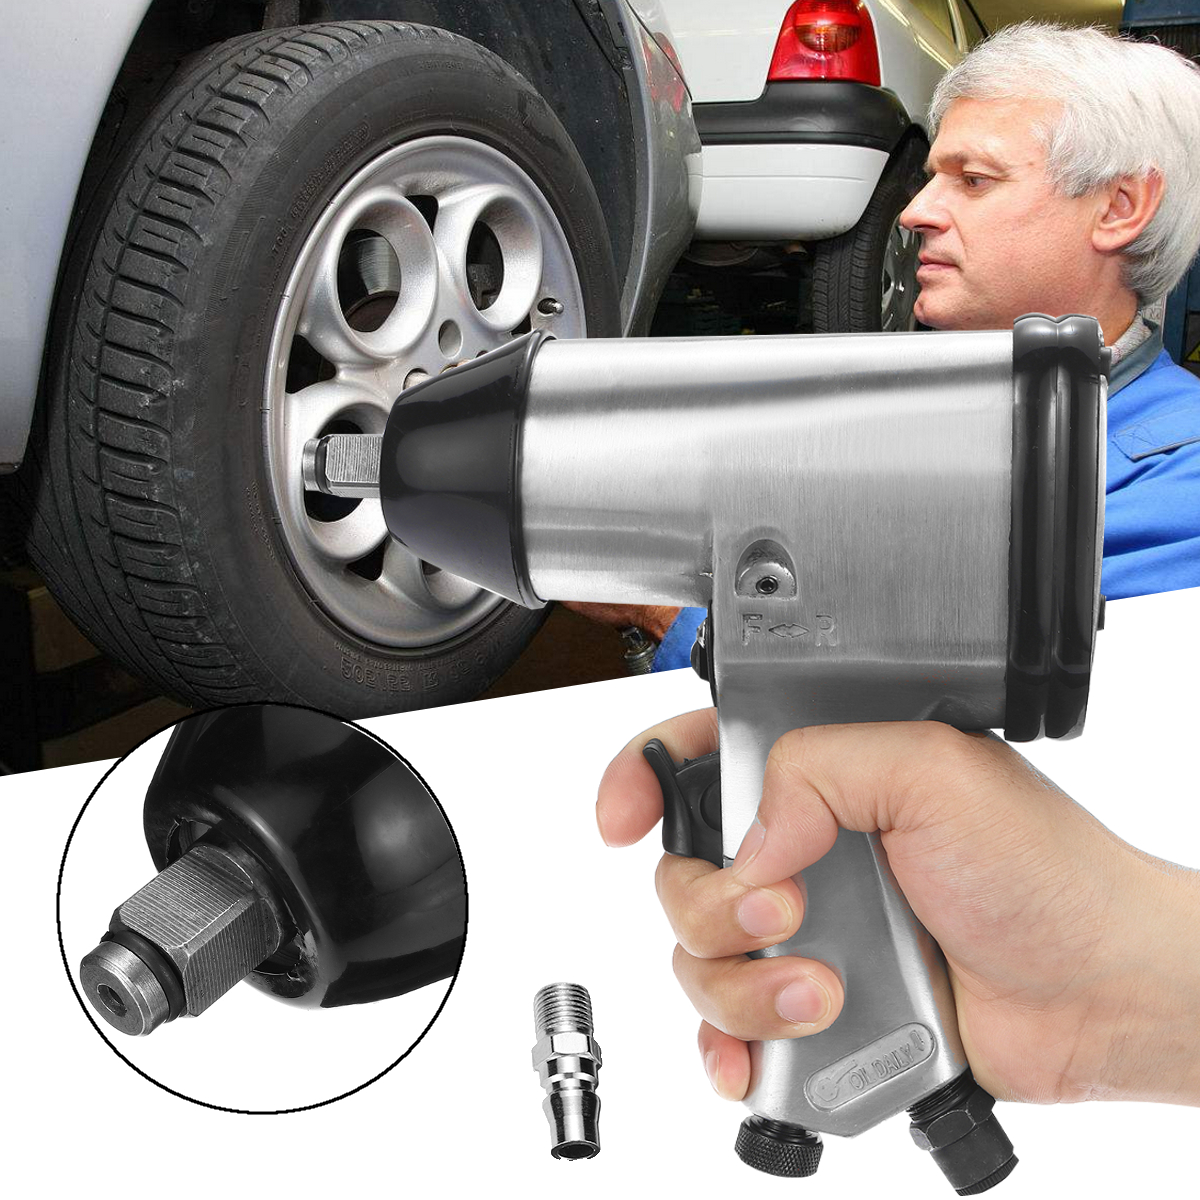 1/2Air Impact Wrench Tool Drive Heavy Duty Pneumatic For Car Wheel Repairing Die Cast Aluminum High Torque Low Noise 4CFM@90PSI high quality heavy duty 1 2 inch pneumatic torque wrench tool air impact wrench 72kg